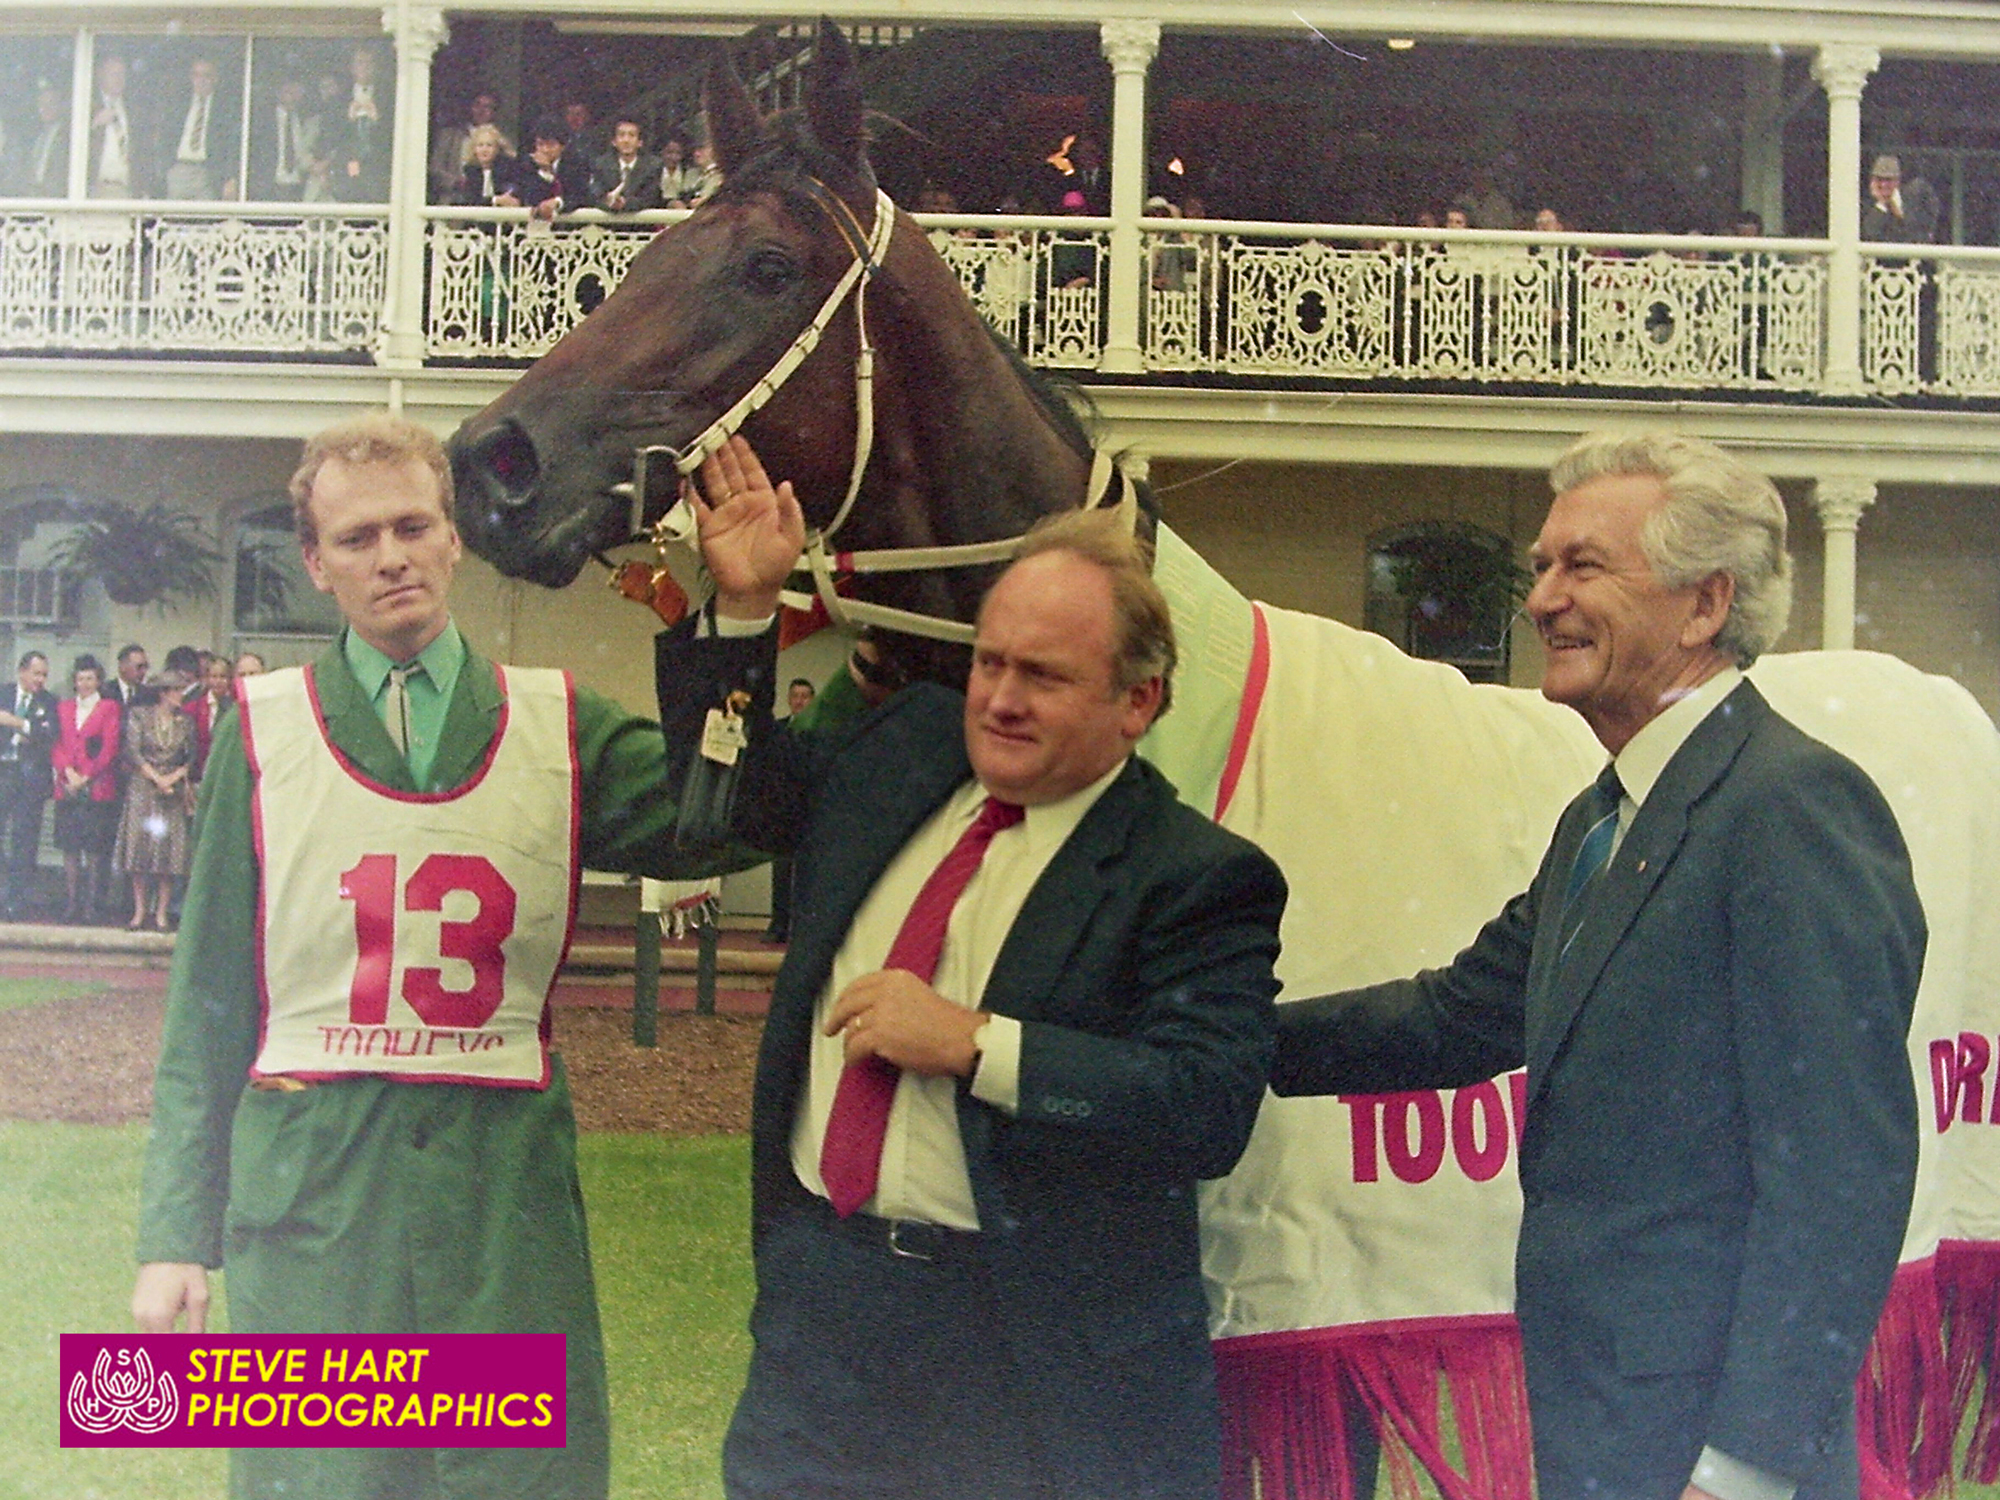 Image courtesy Steve Hart Photographics - Clarry after the Derby in the company of a Prime Minister.